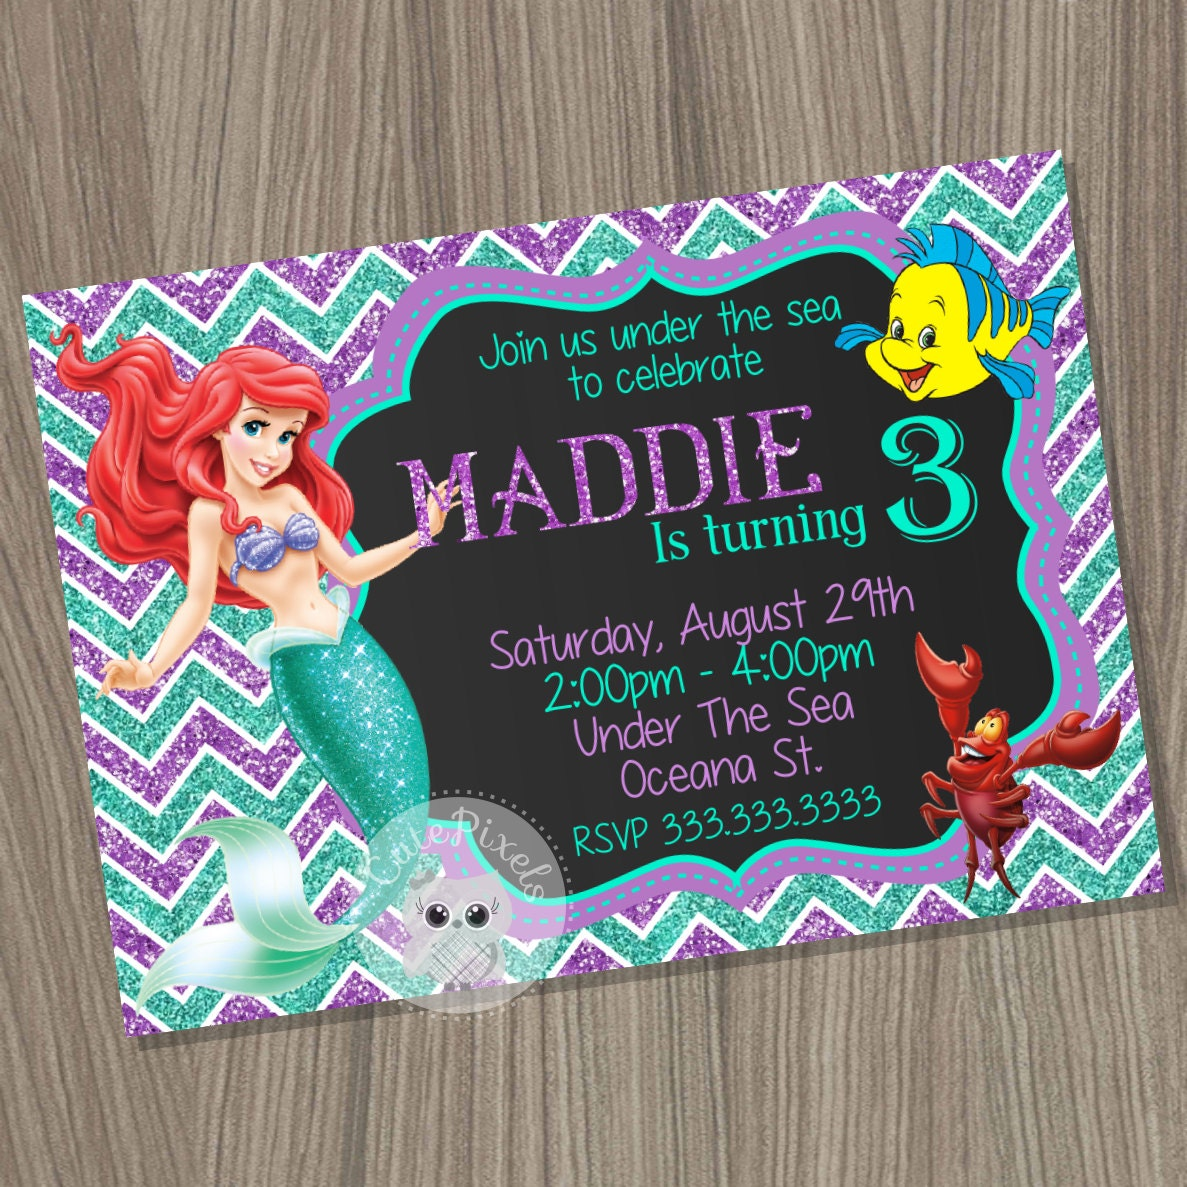 Little Mermaid Party Invitations and get inspiration to create nice invitation ideas